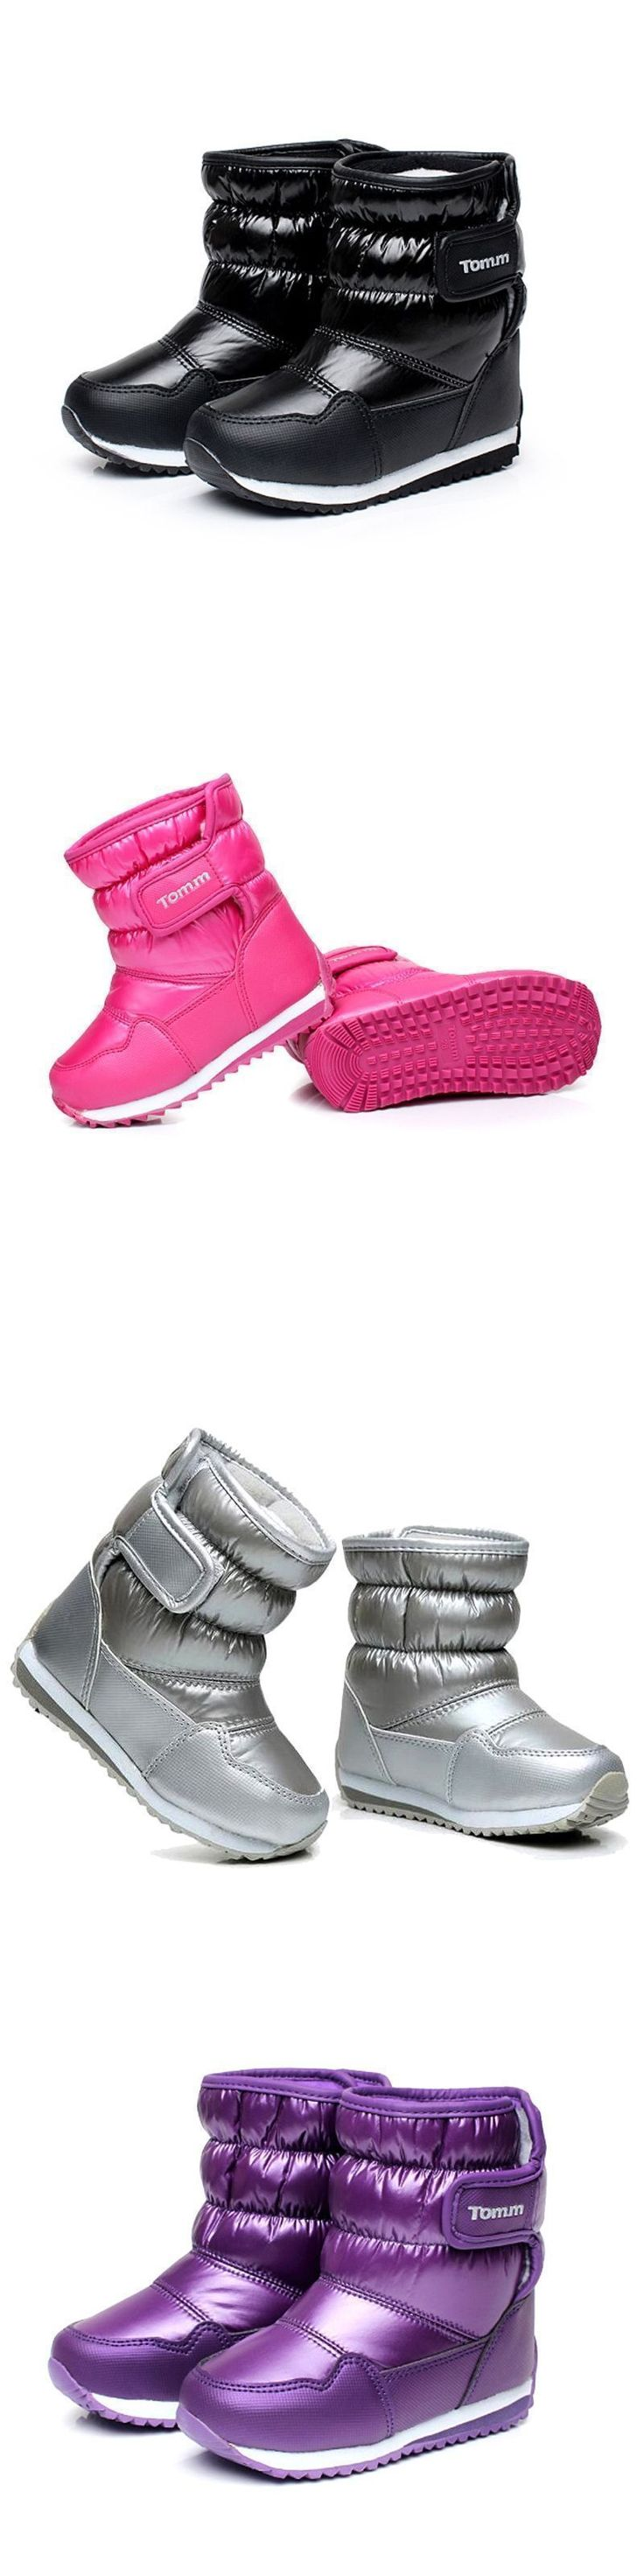 Children's Rubber Boots For Girls Boys mid-calf bungee lacing snow boots waterproof girls boot sport shoes fur lining kids boot #midcalfboots